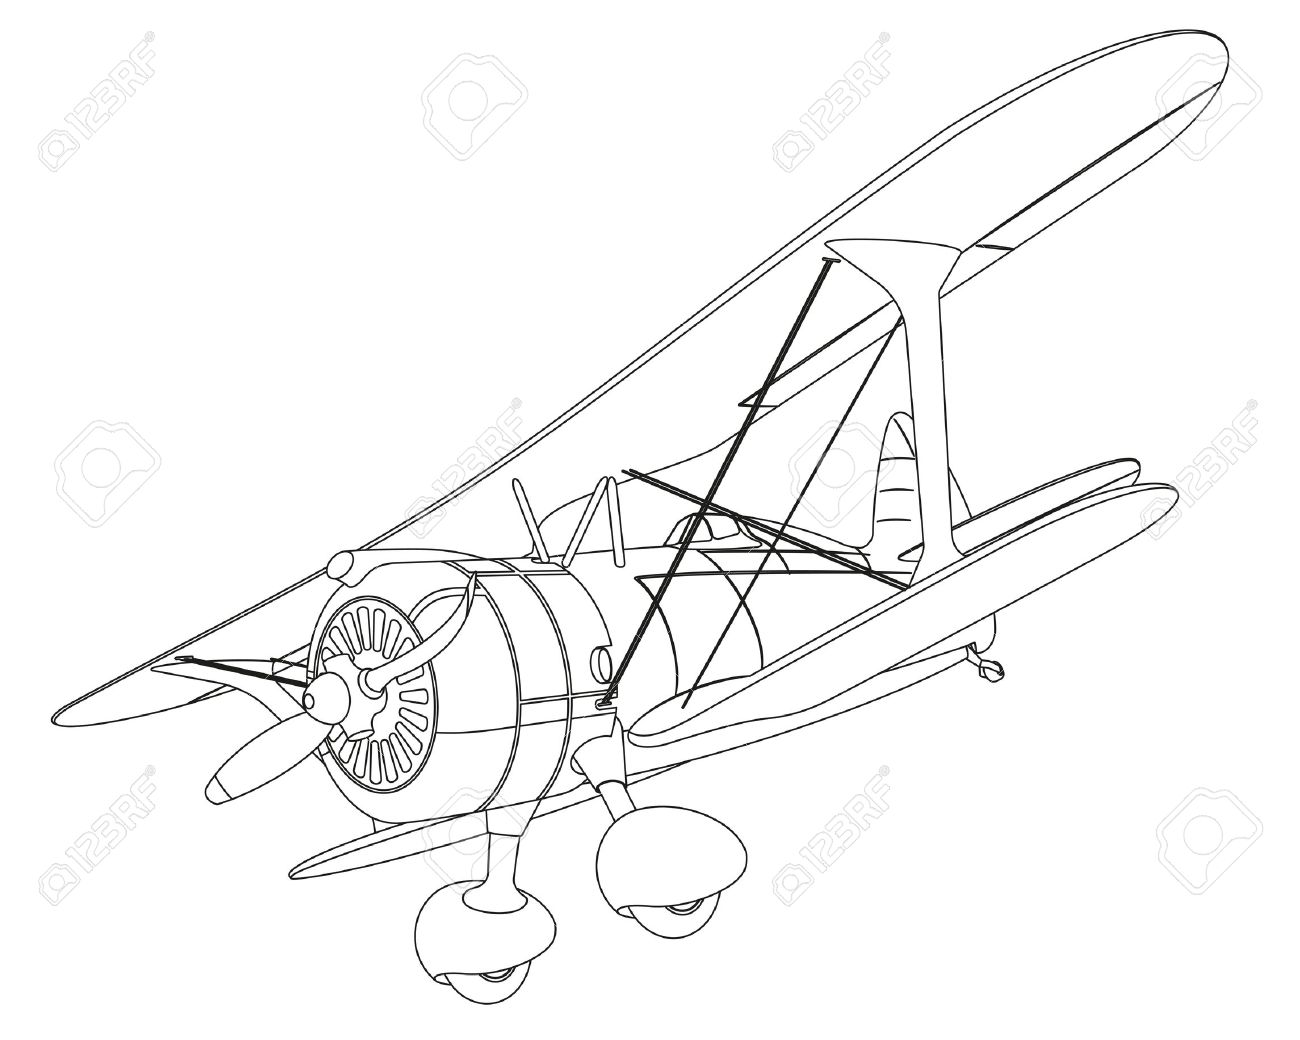 Old Airplane Drawing At Getdrawings